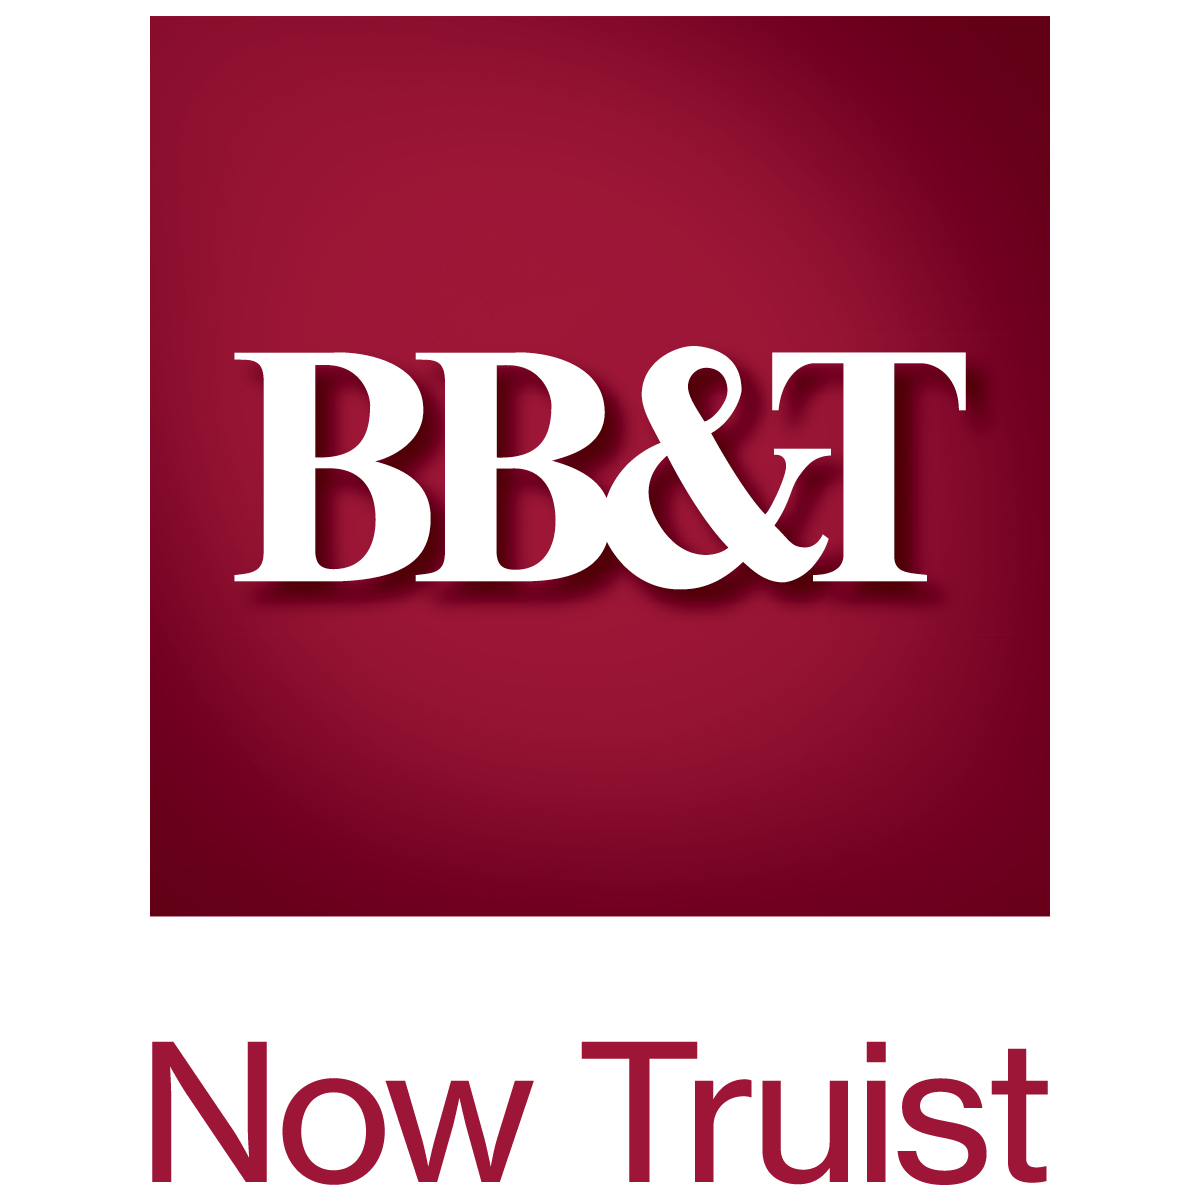 BB&T Now Truist Logo